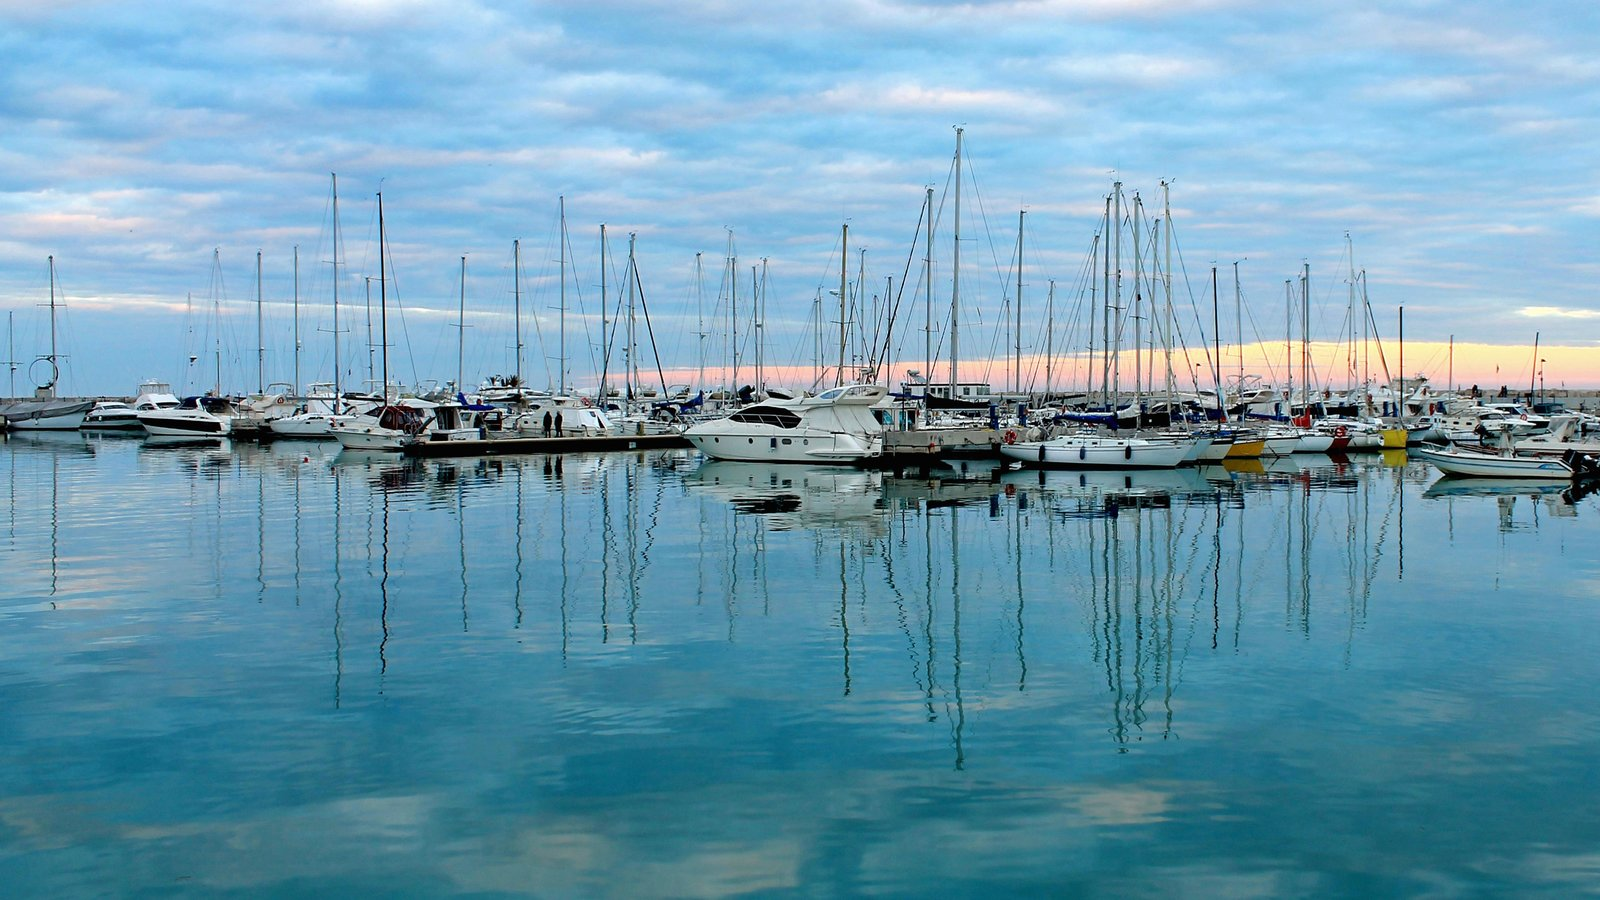 San Benedetto del Tronto which includes a sunset, general coastal views and a bay or harbor